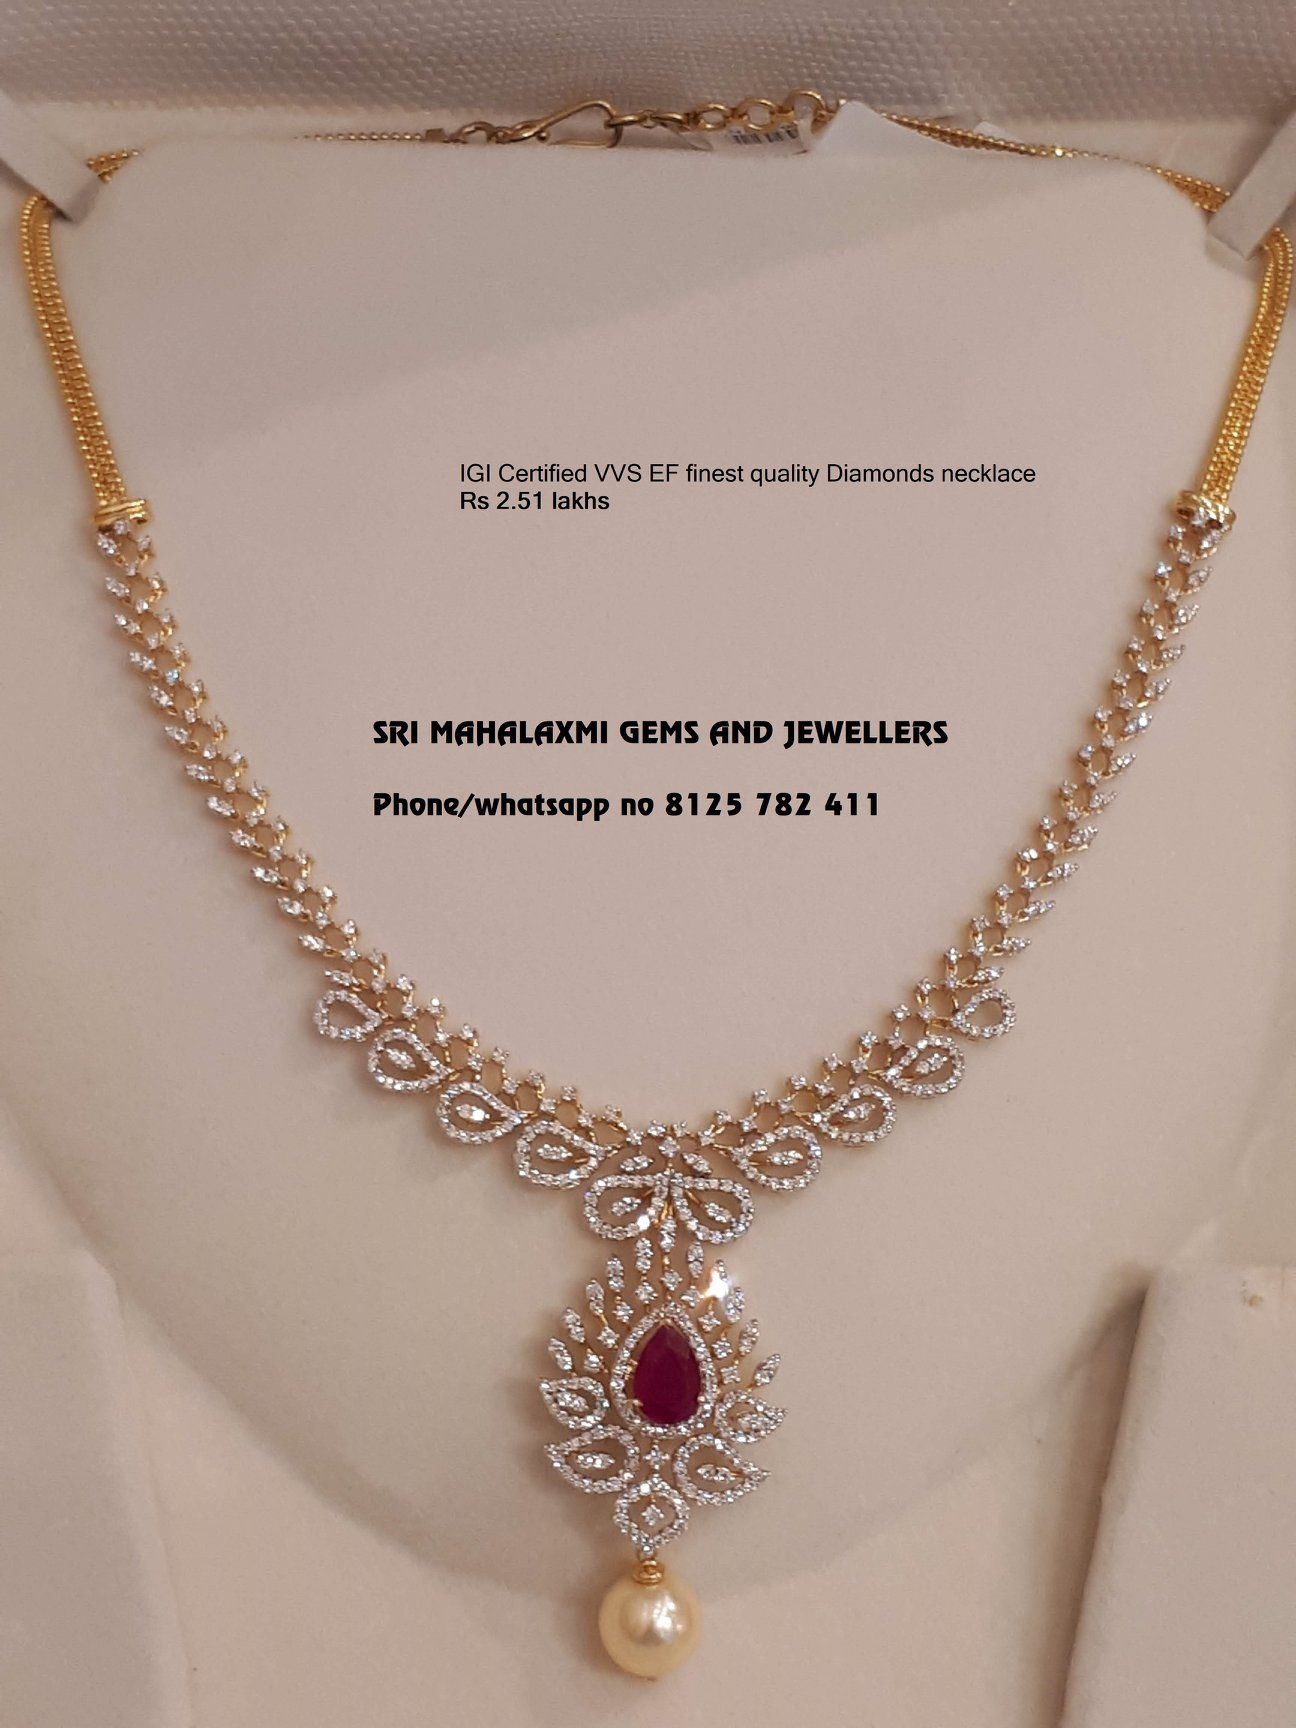 Sri Mahalaxmi Gems And Jewellers Present A Very Simple And Beautiful Design Of Ig Pretty Gold Necklaces Gold Jewellery Design Necklaces Jewelry Design Necklace